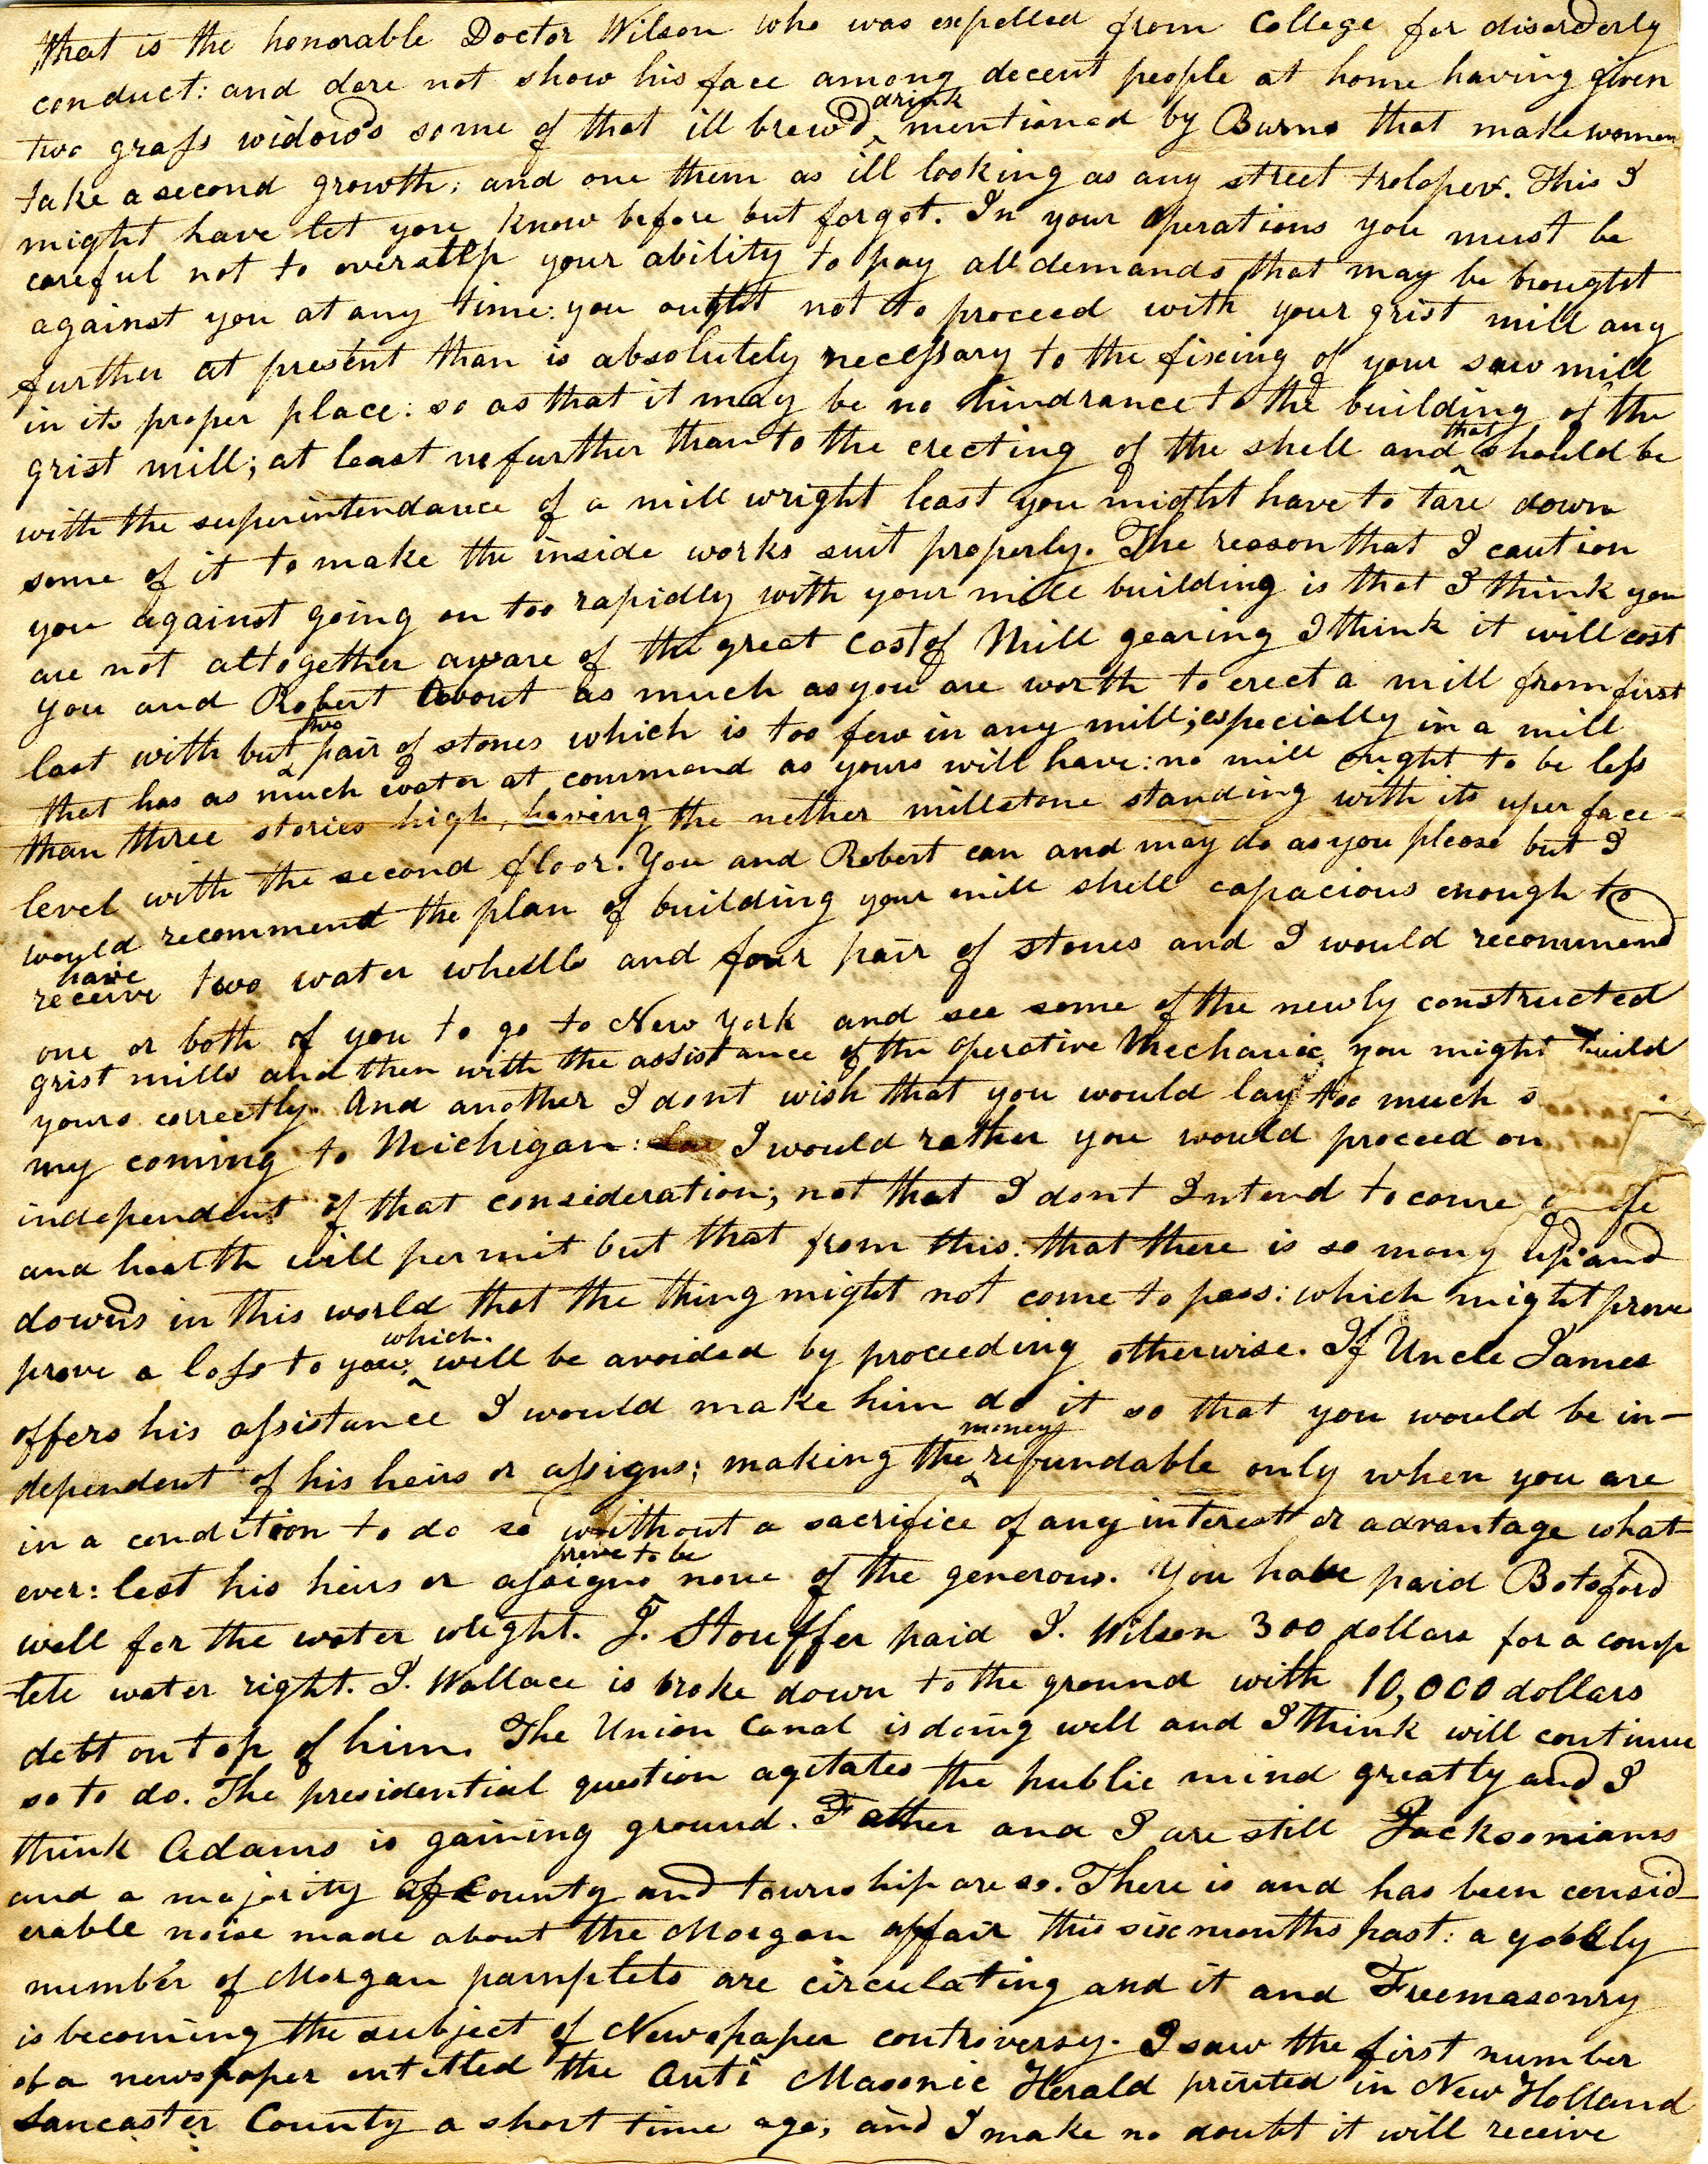 Letter From William Geddes to John Geddes, July 22, 1828  image